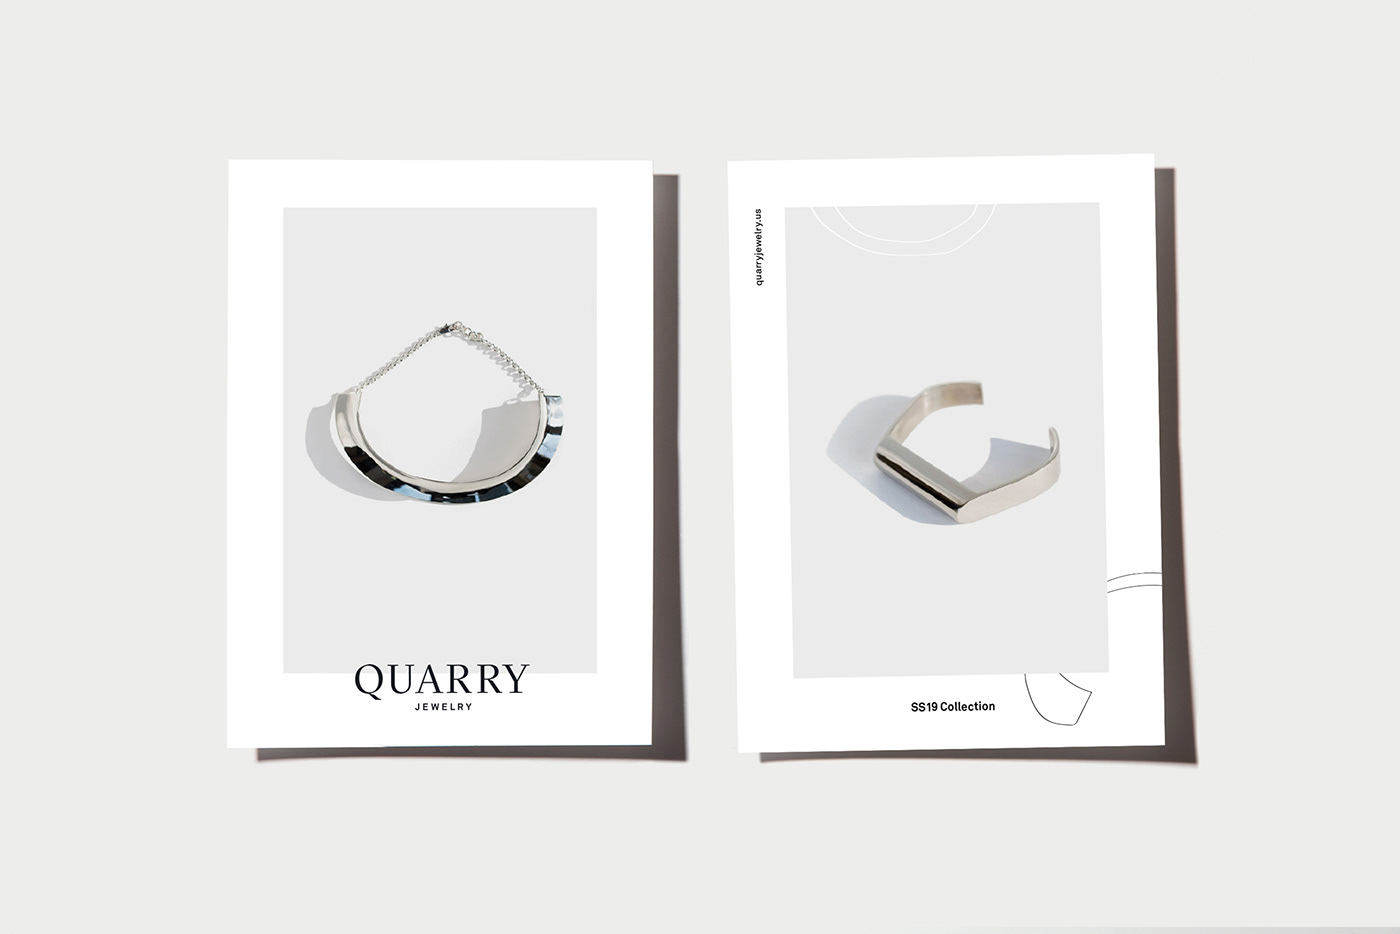 design,brand identity,Collateral,Logo Design,jewelry,personal project,Jewellery